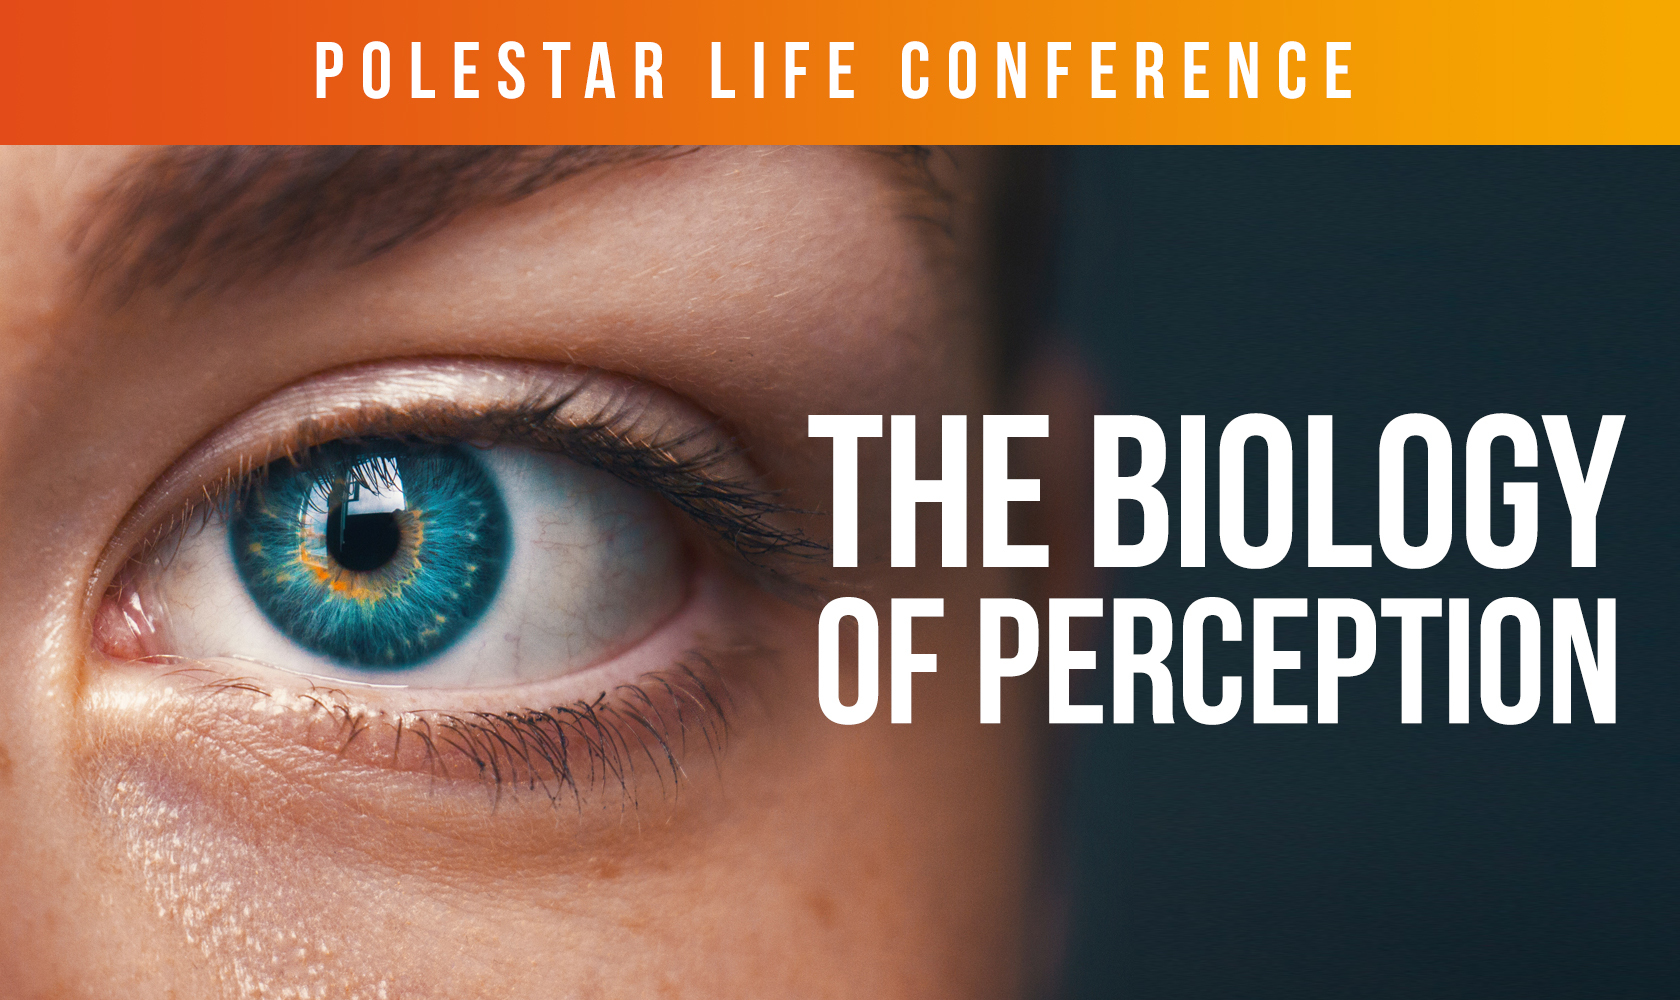 The Biology of Perception (Polestar Life Conference Series)